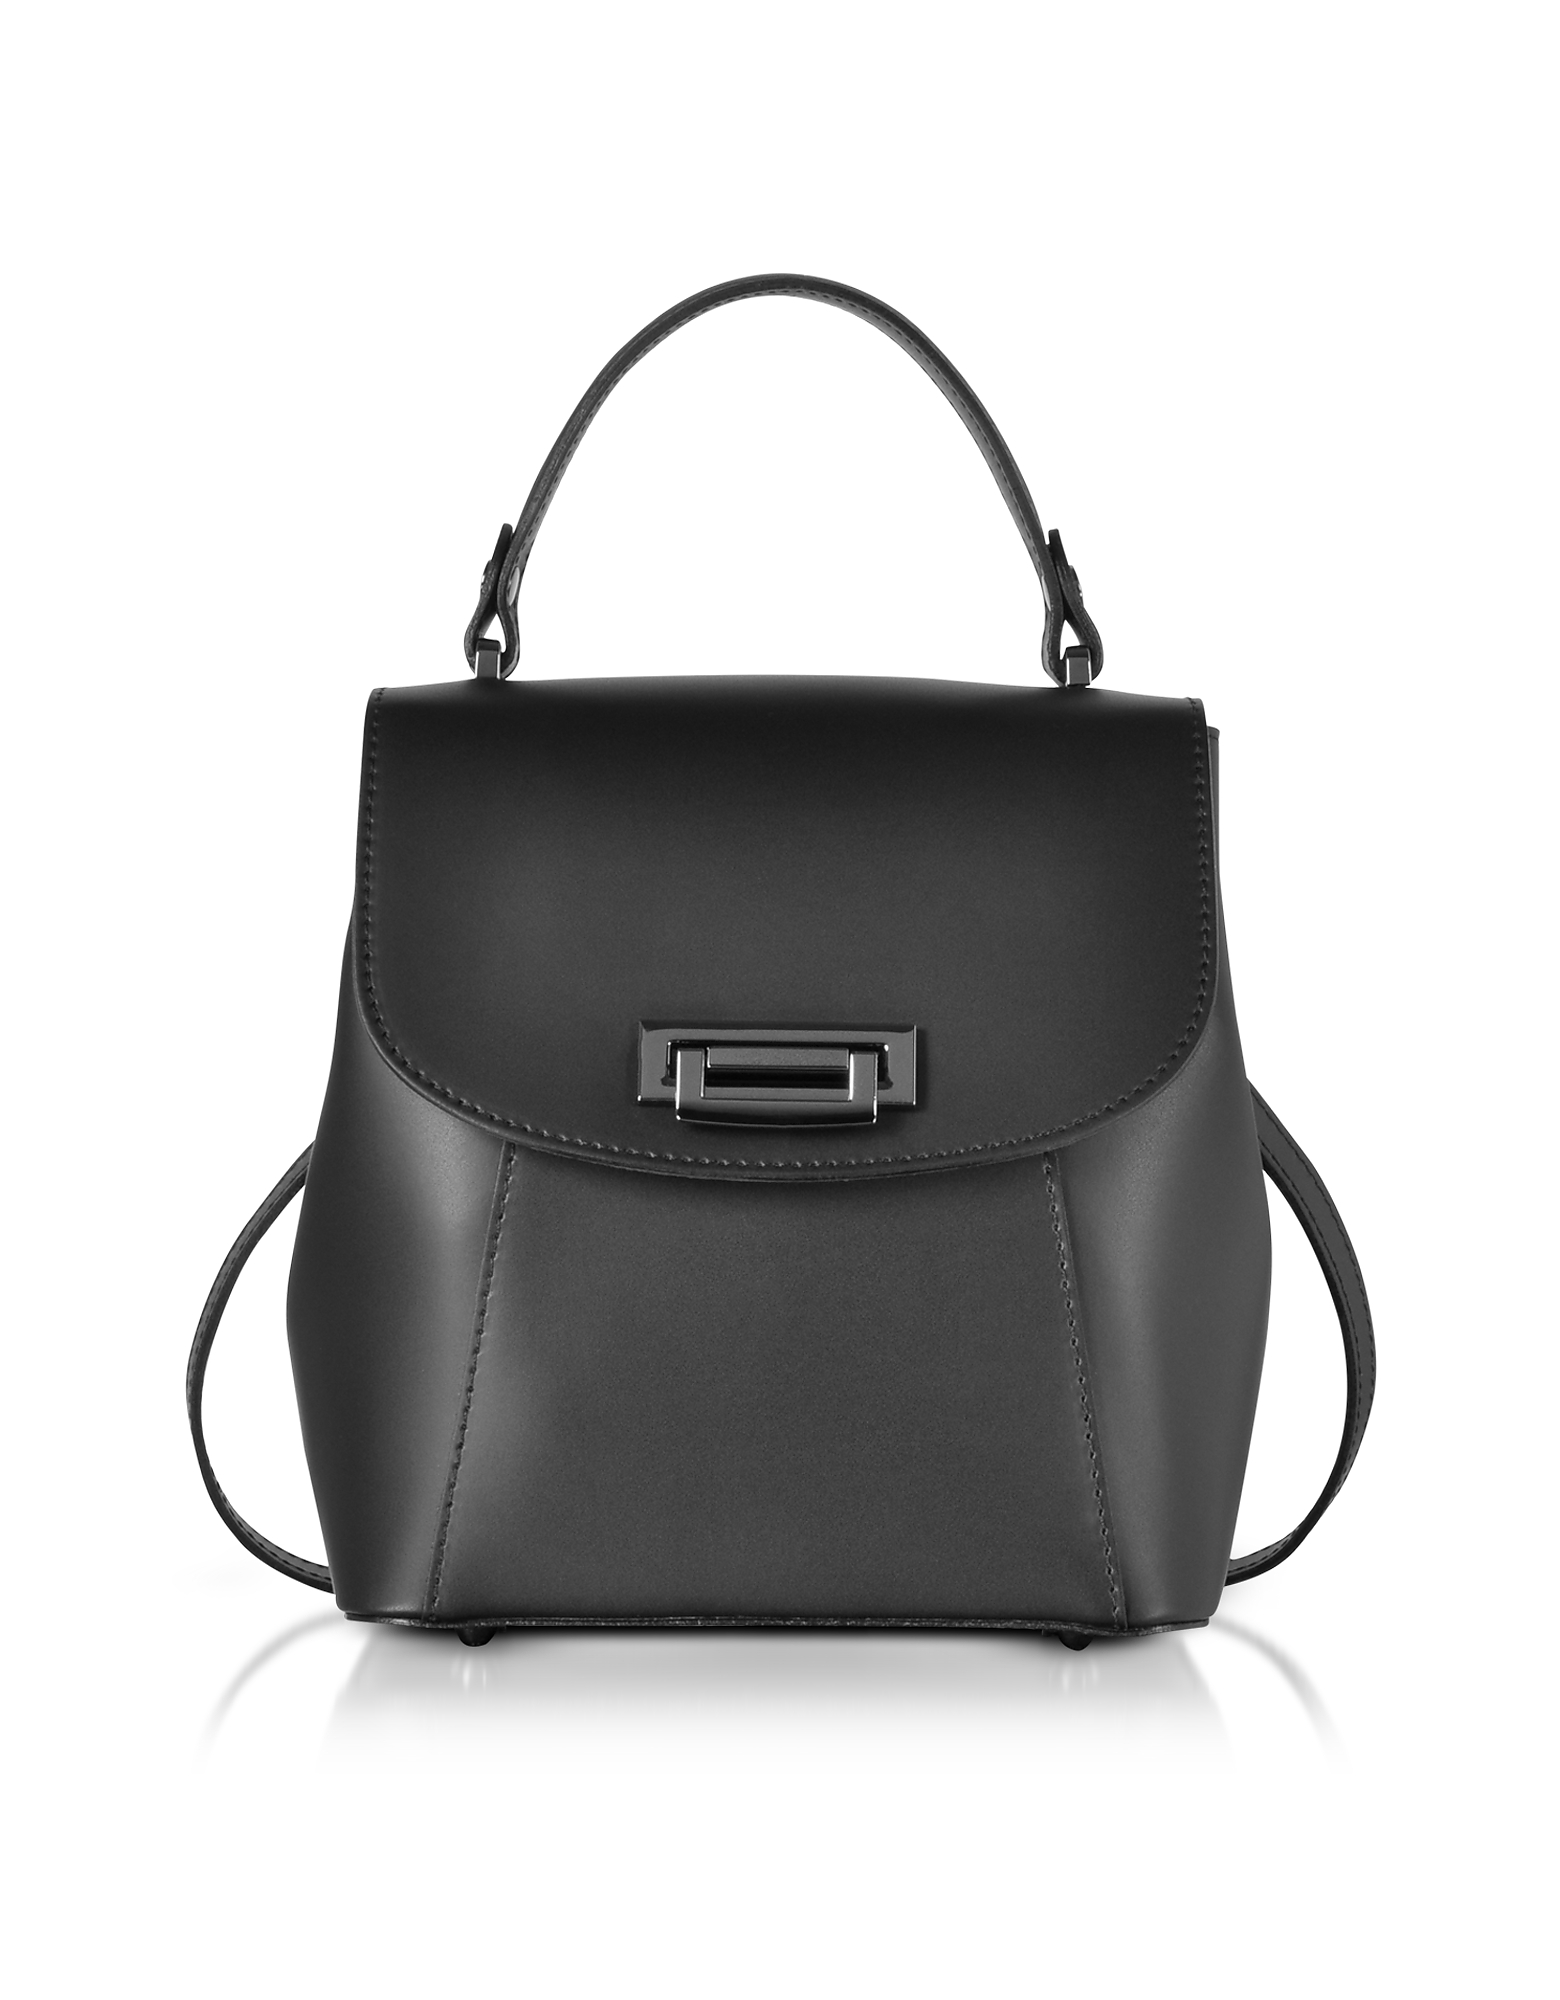 Gisèle 39 Designer Handbags, Venus Leather Convertible Satchel/Backpack